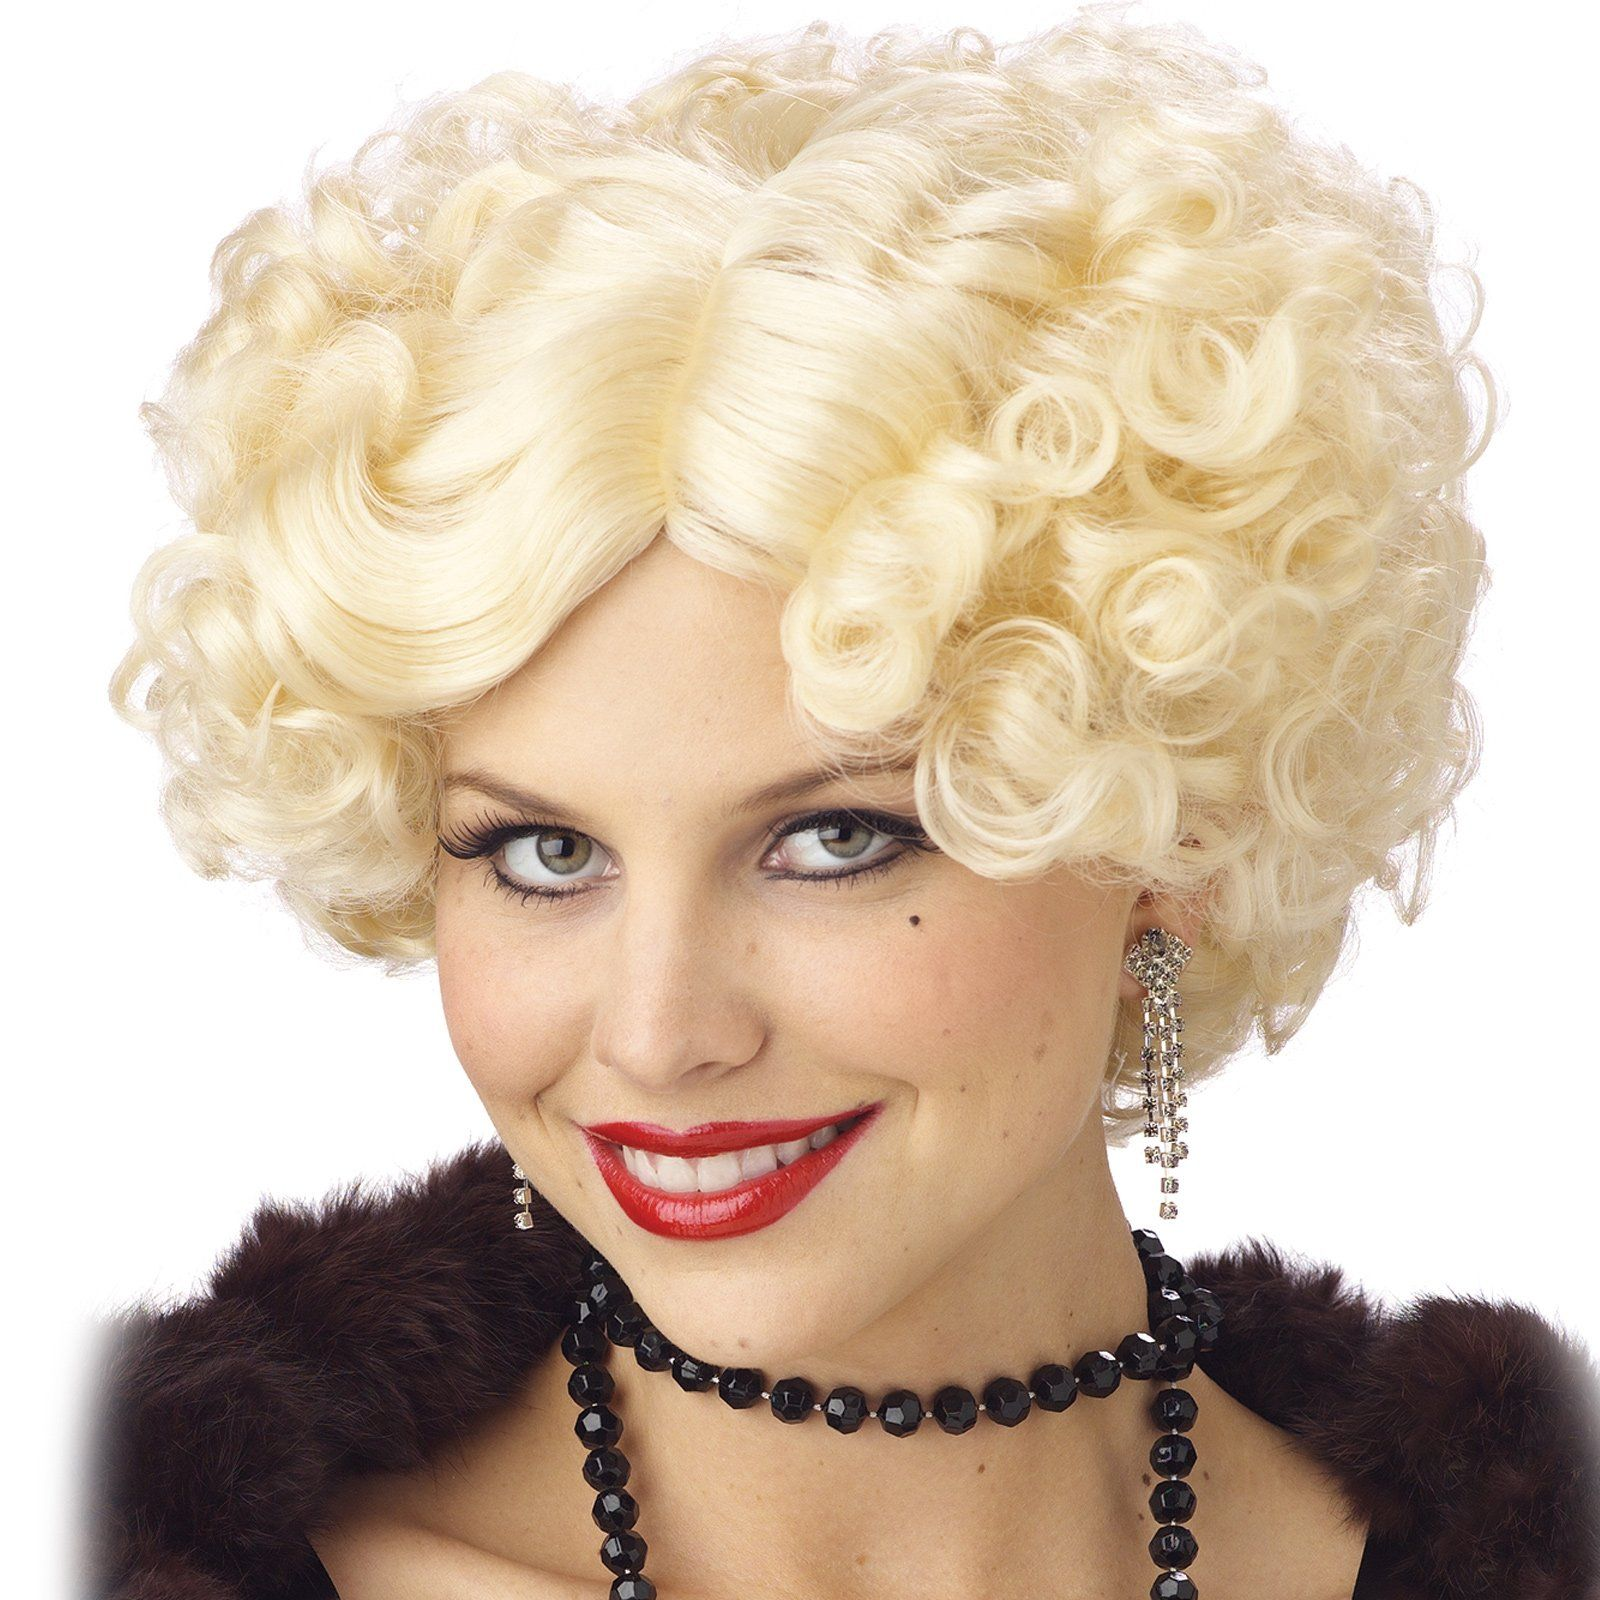 Jazz Baby Wig Blonde Adult from BuyCostumes.com  sc 1 st  Pinterest & Jazz Baby Wig Blonde Adult from BuyCostumes.com | Shrek | Pinterest ...